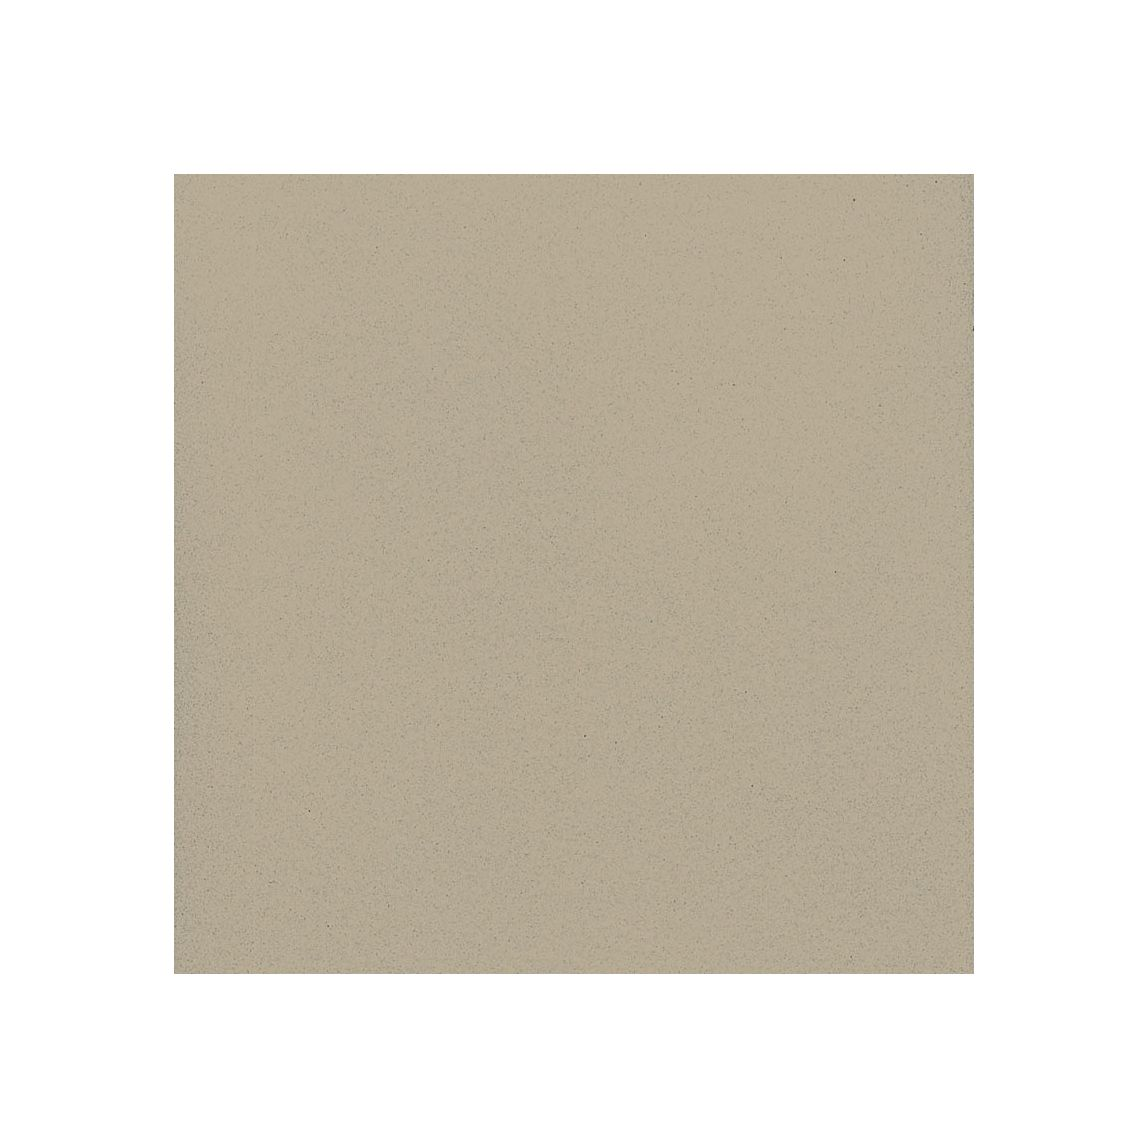 Champagne Metallic Champagne Metallic Swatch